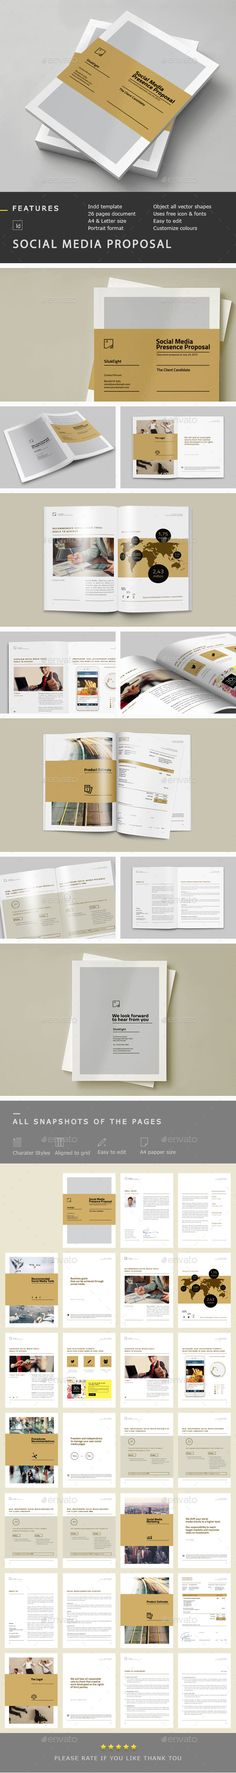 Web Design Proposal Proposals, Proposal templates and Layouts - website proposal template